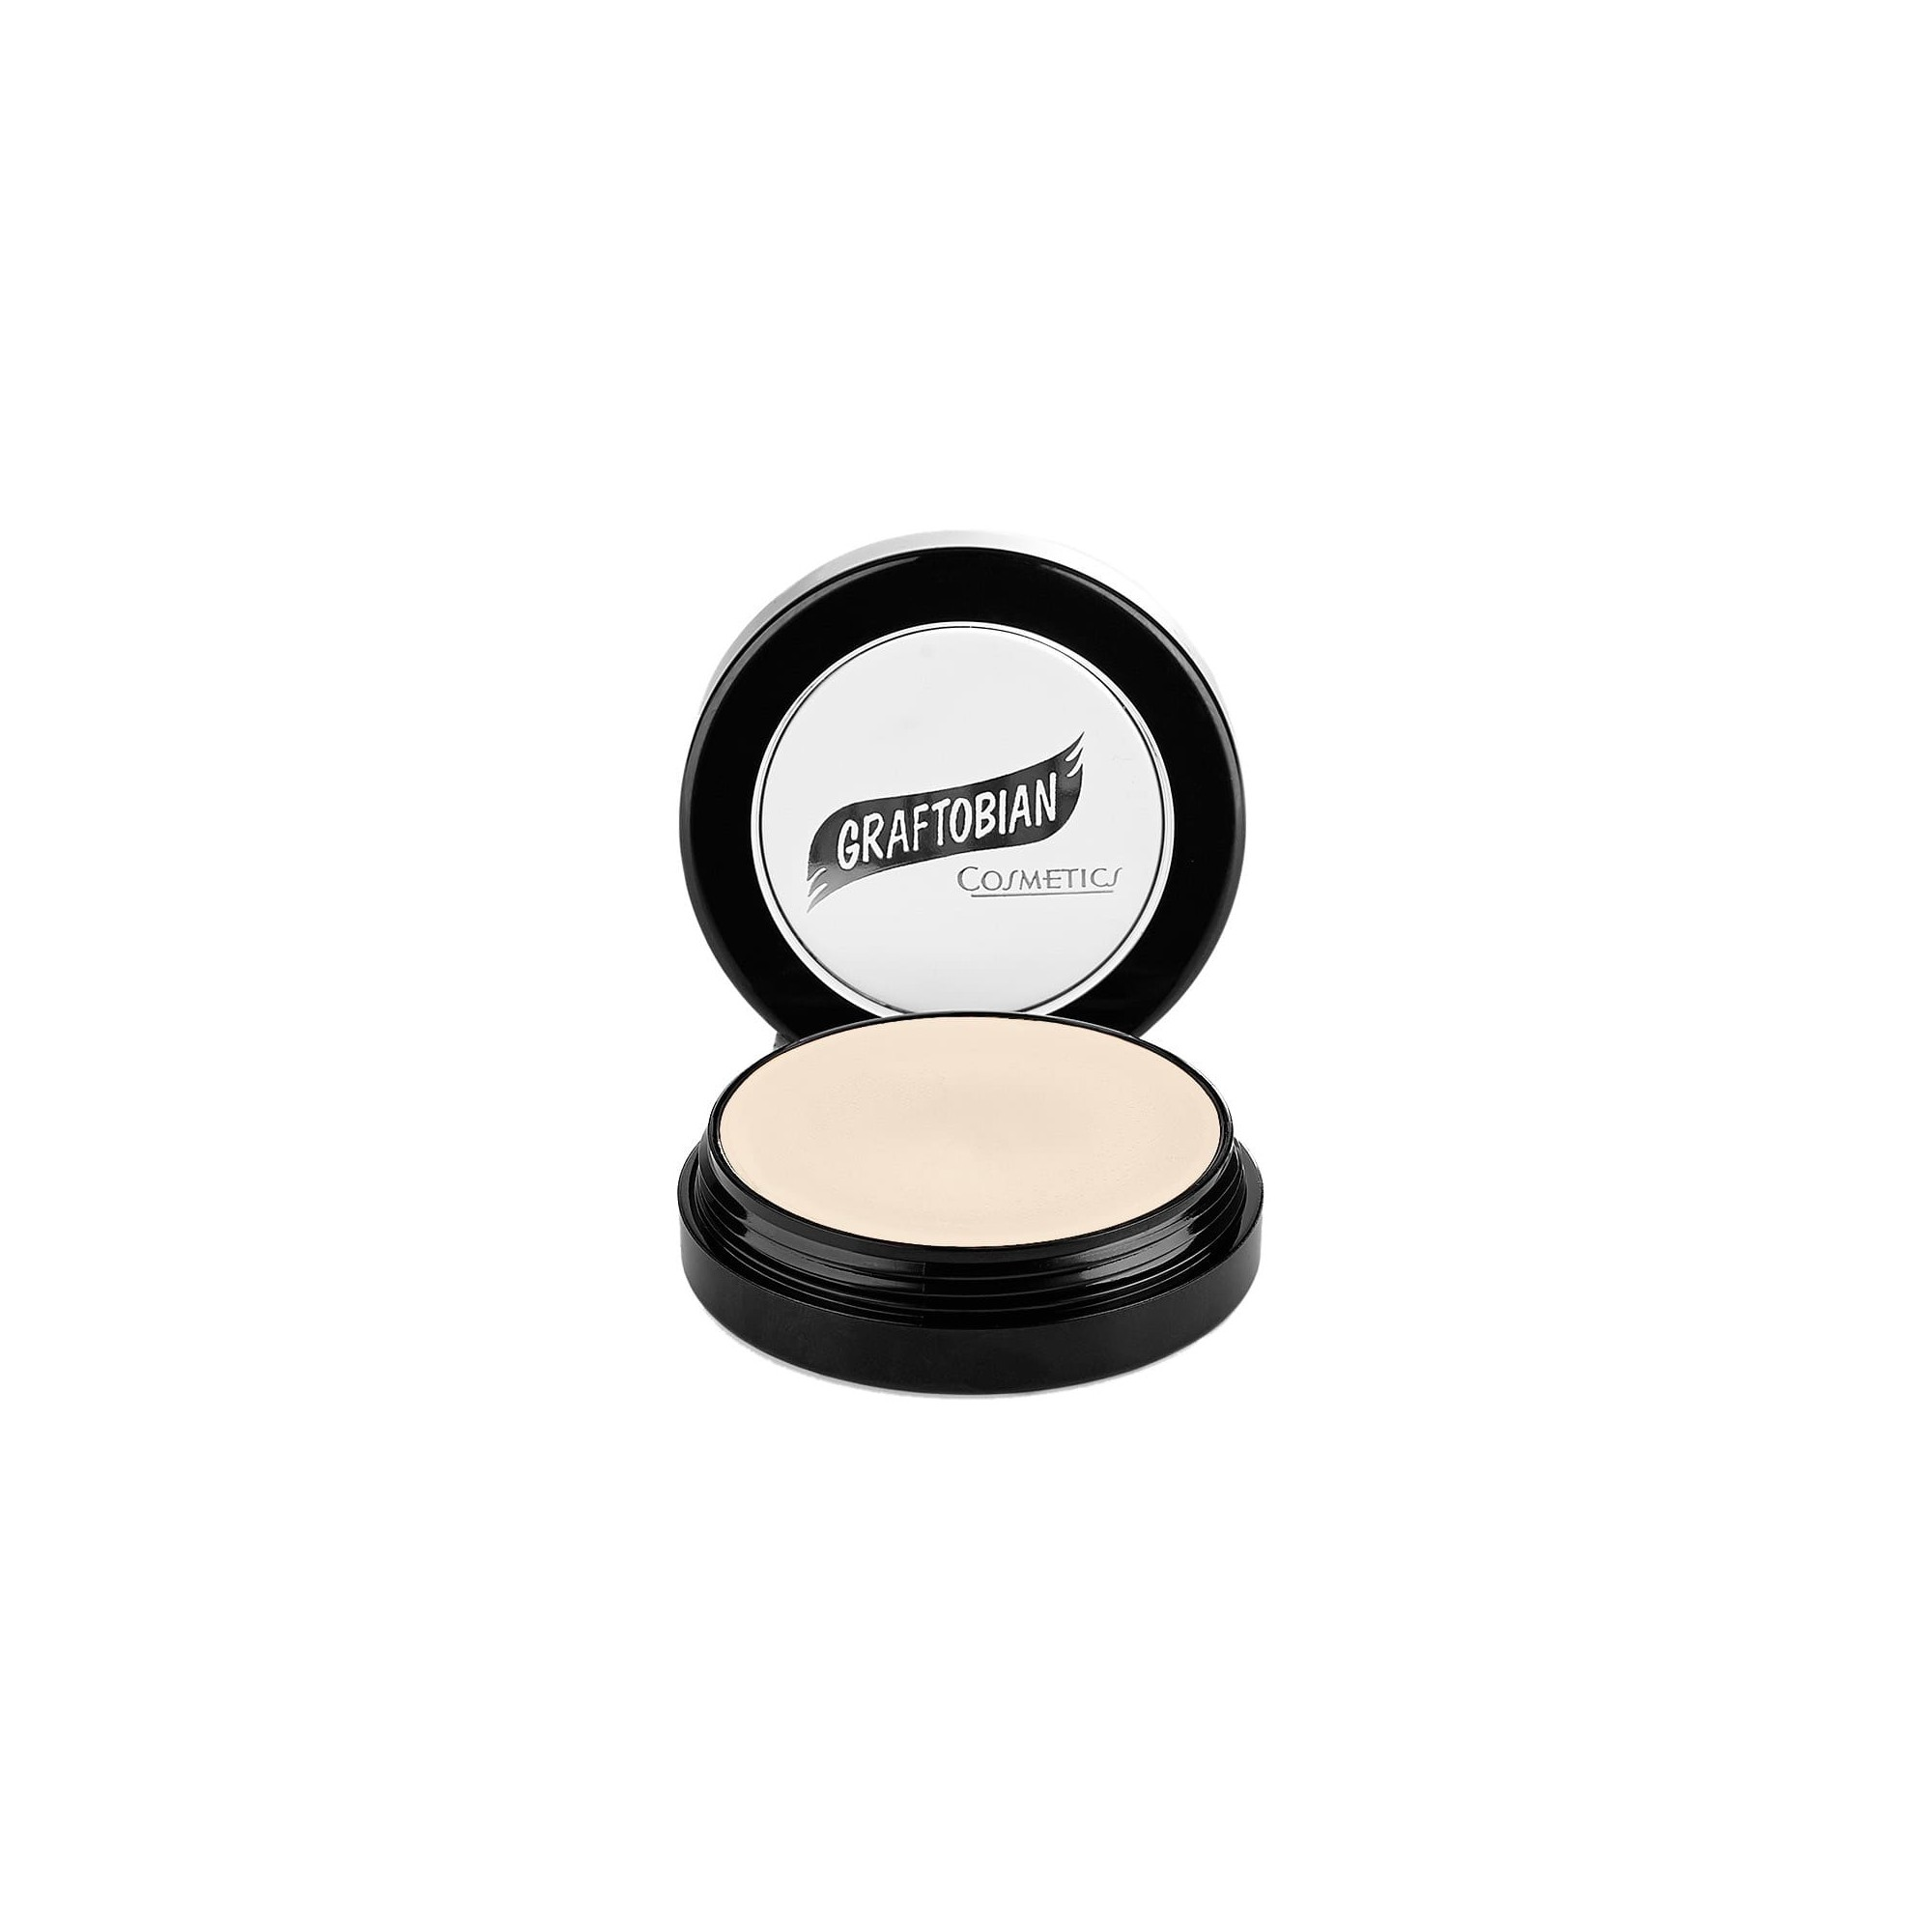 Graftobian Ultra HD Glamour Cream Foundation W-Ivory: 30379